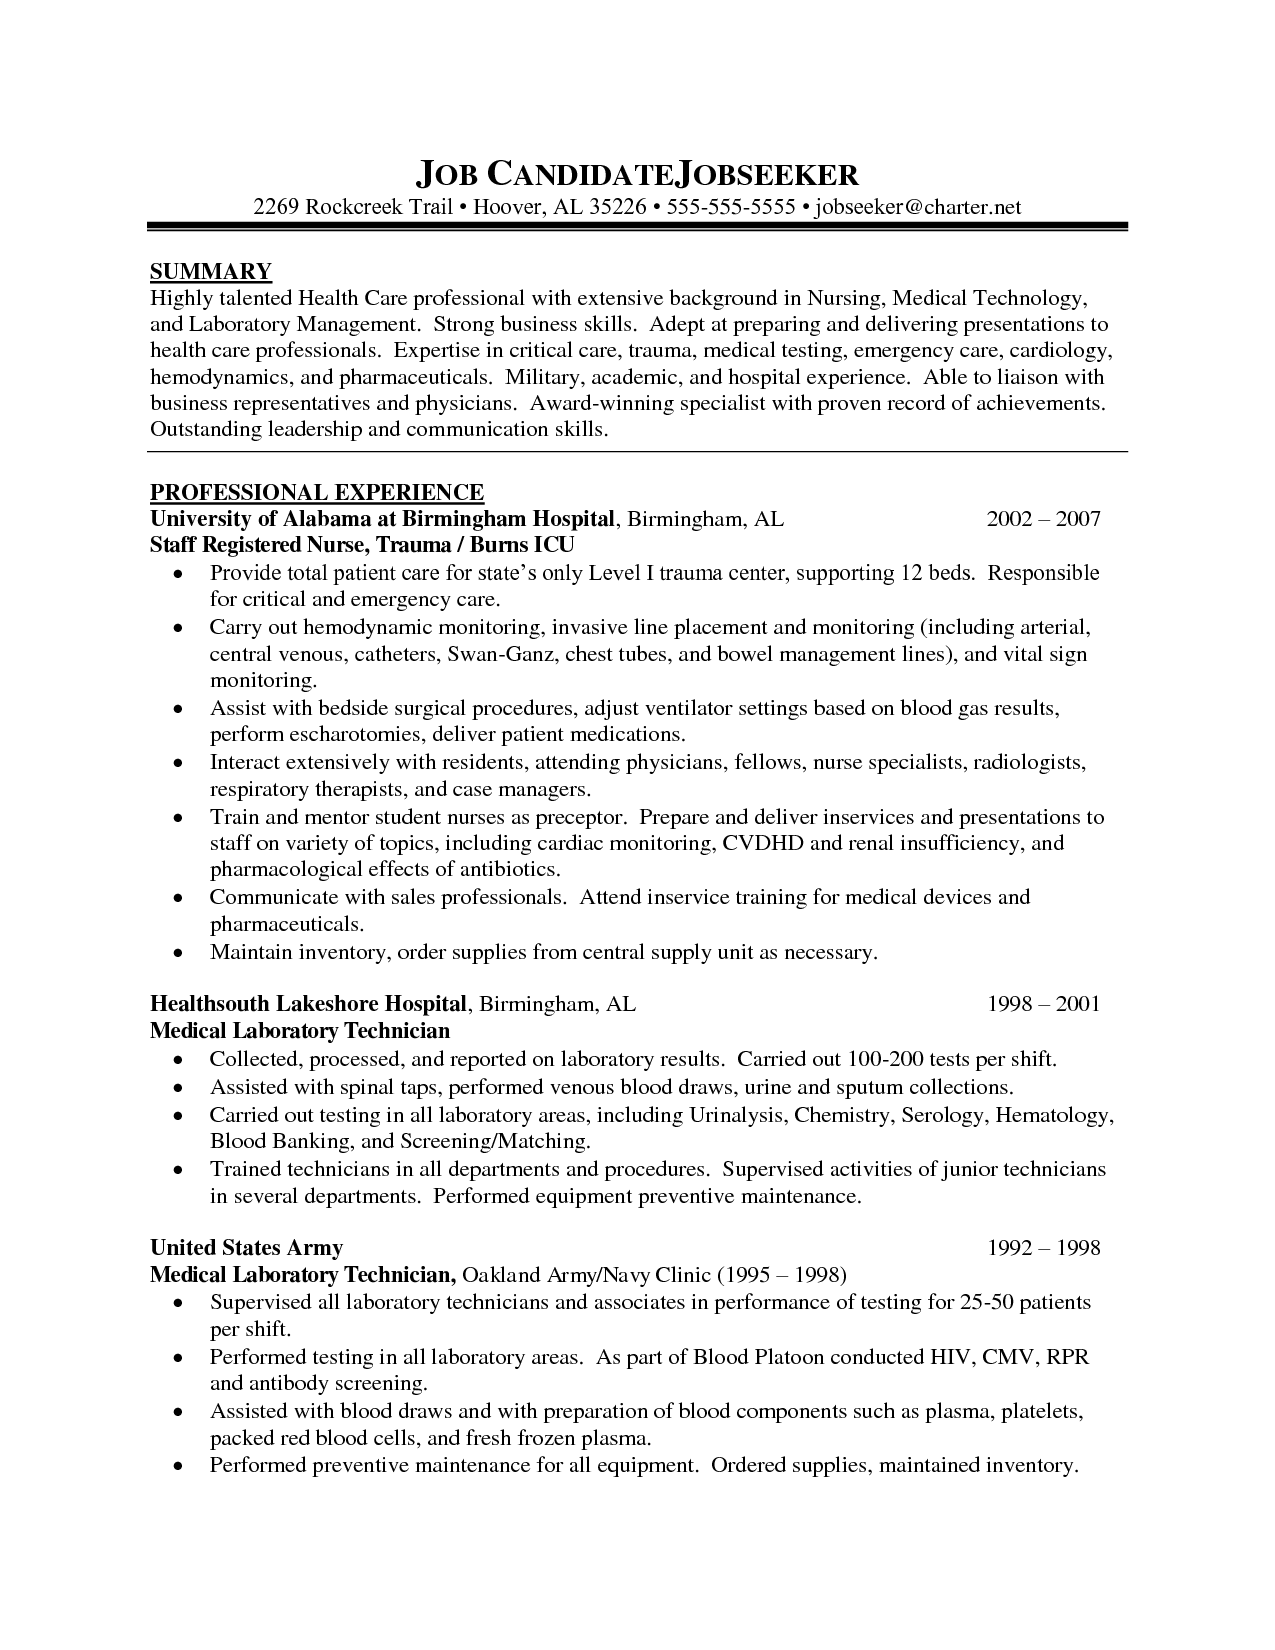 Nursing School Resume Template Oncology Nurse Resume Objective  Httpwwwresumecareer